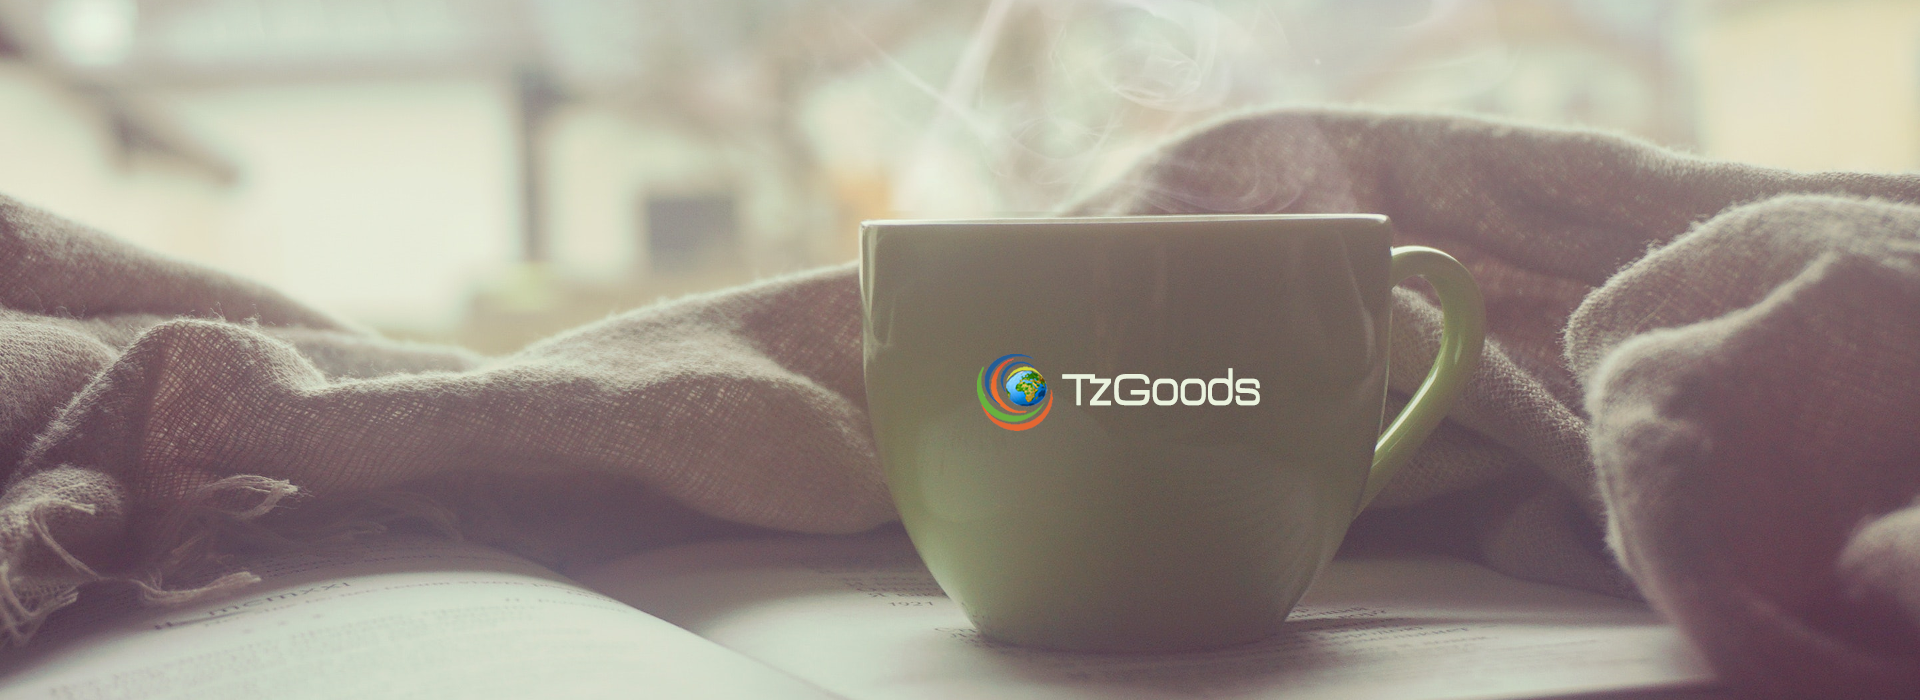 TzGoods.com Best Tea